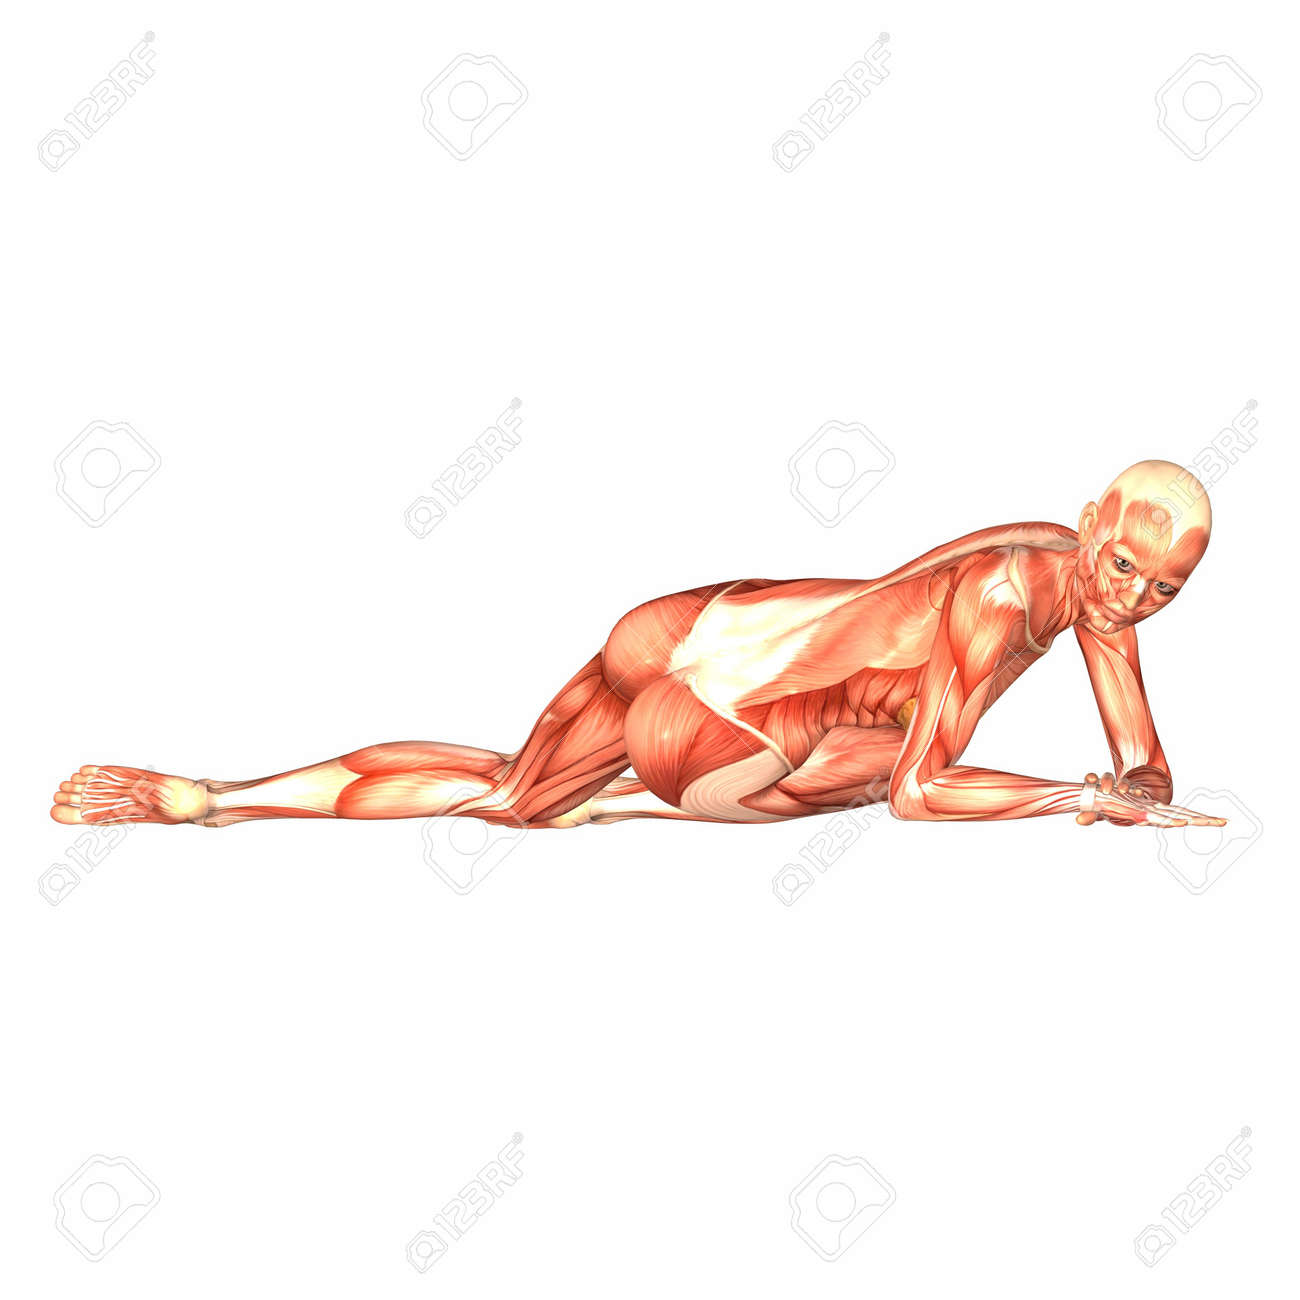 Illustration of the anatomy of the female human body isolated on a white background Stock Illustration - 12743296